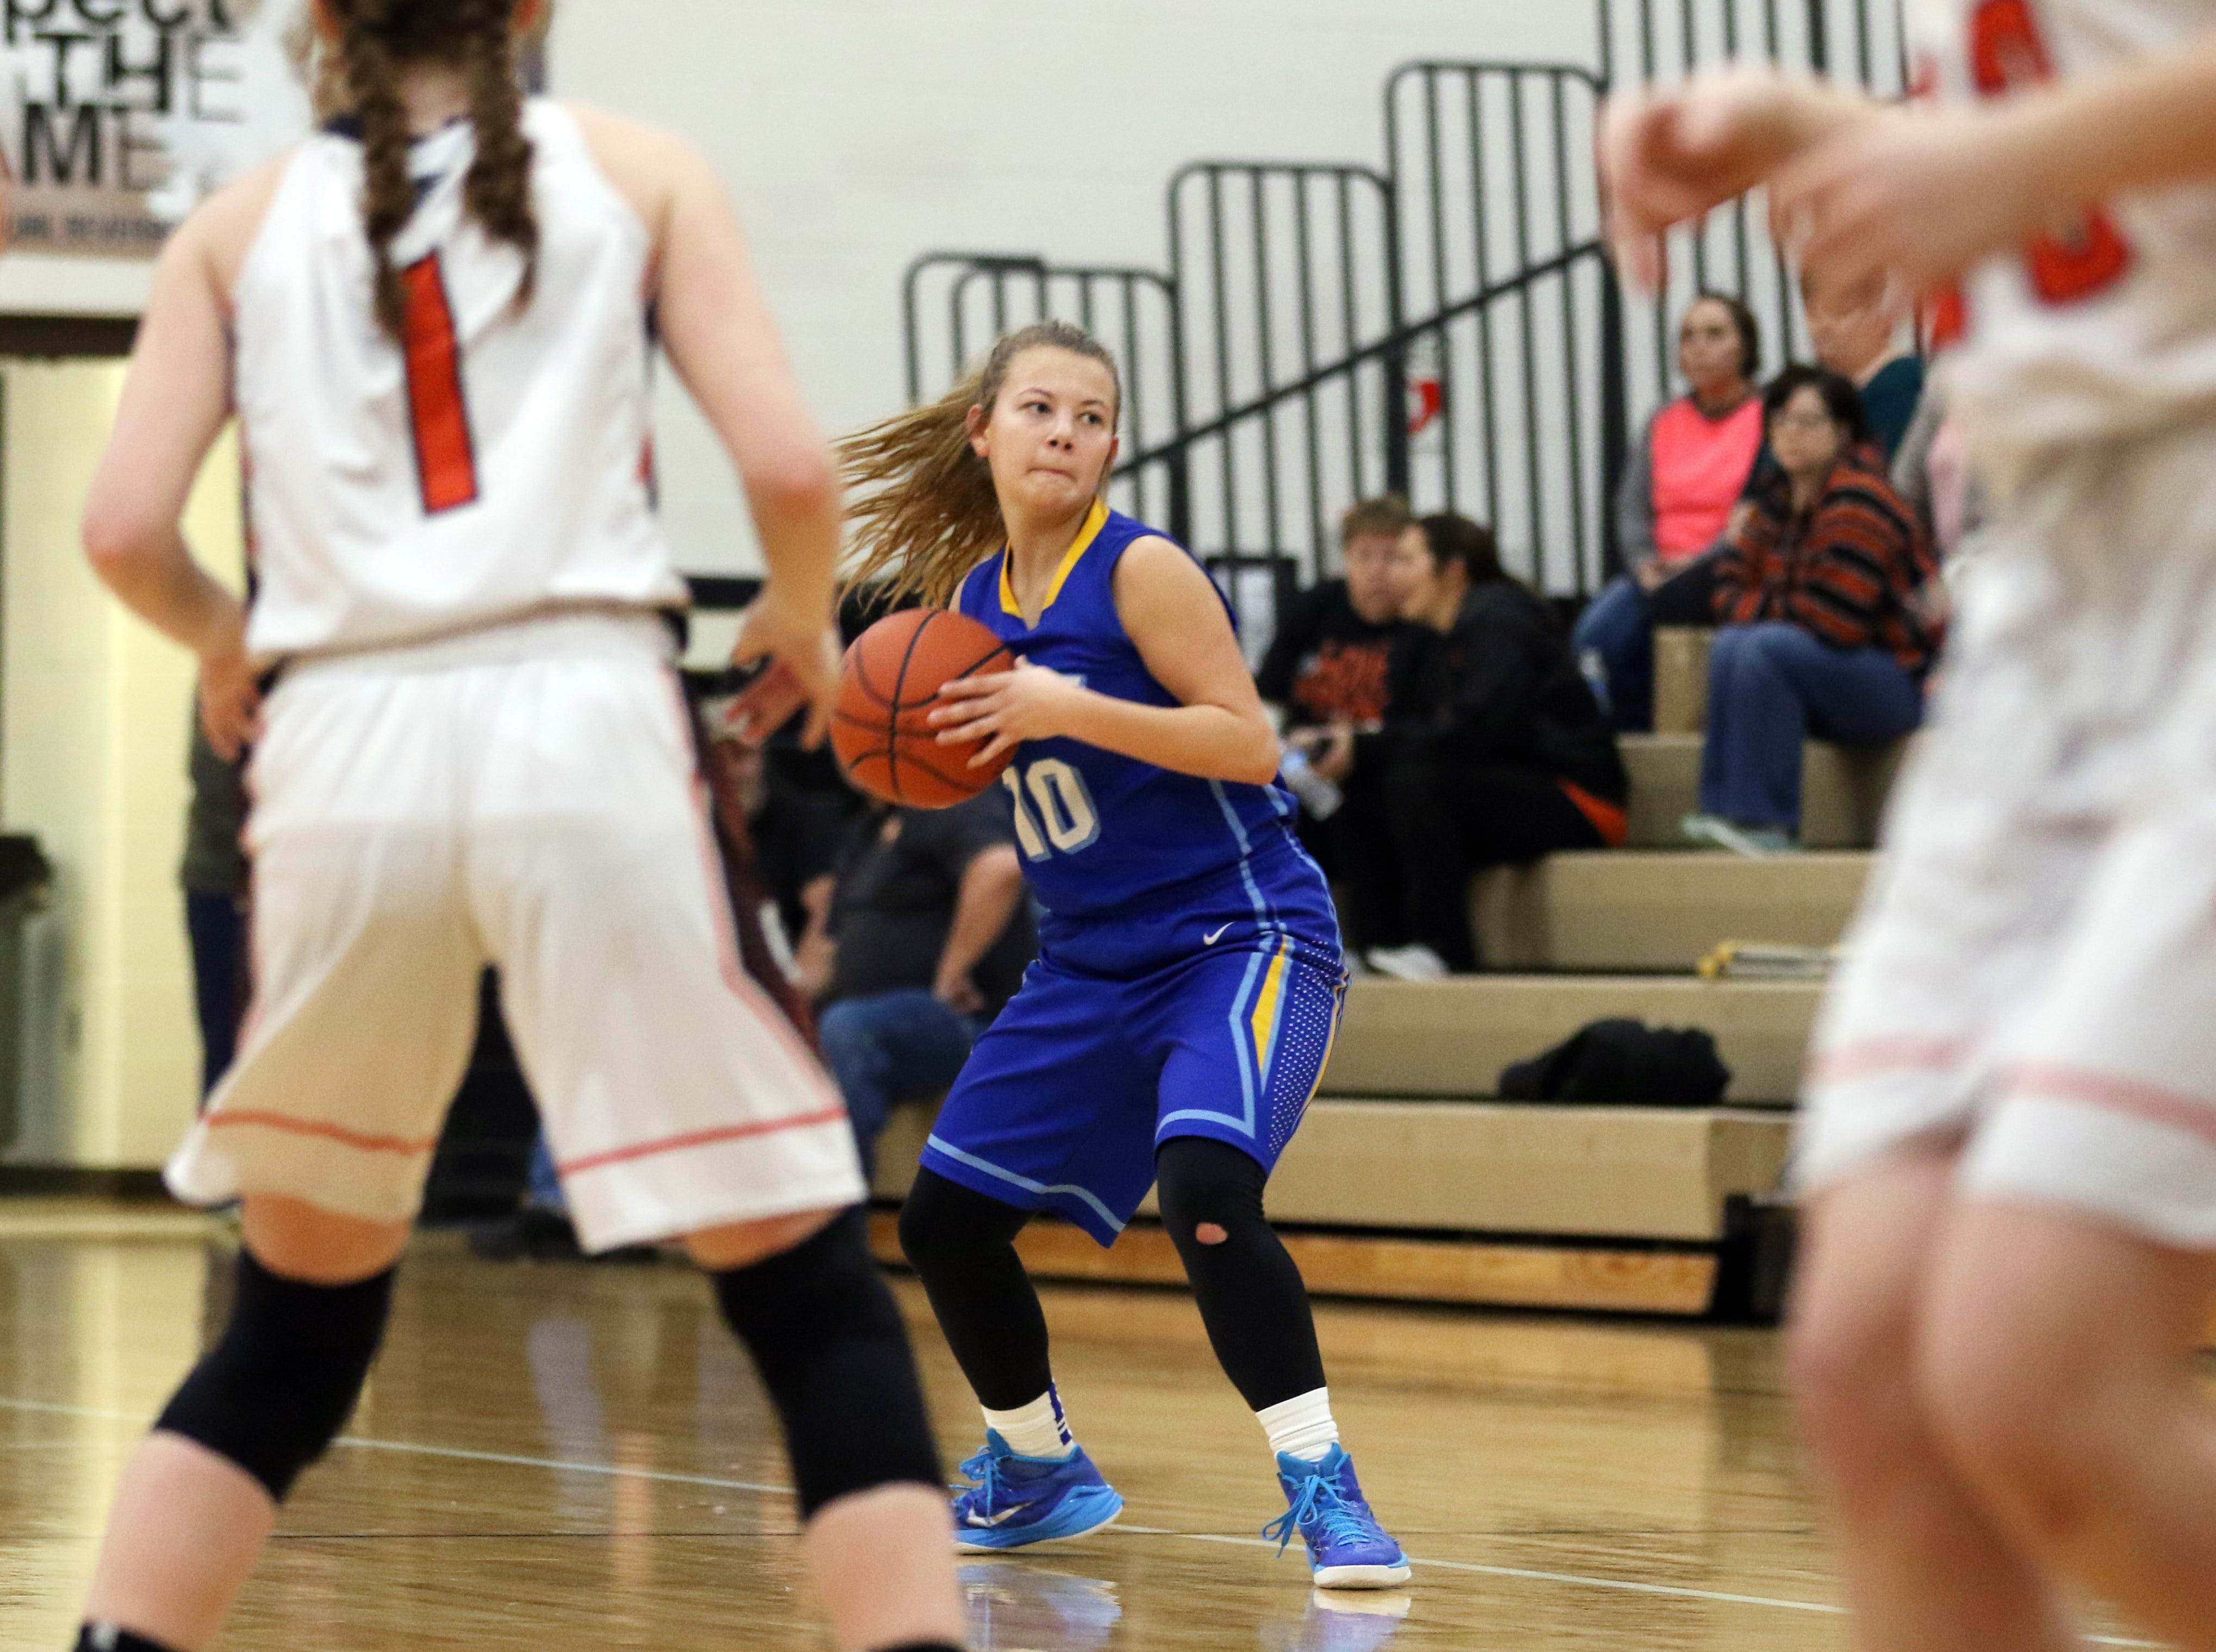 West Muskingum's Emma Abrams looks to pass against New Lexington.